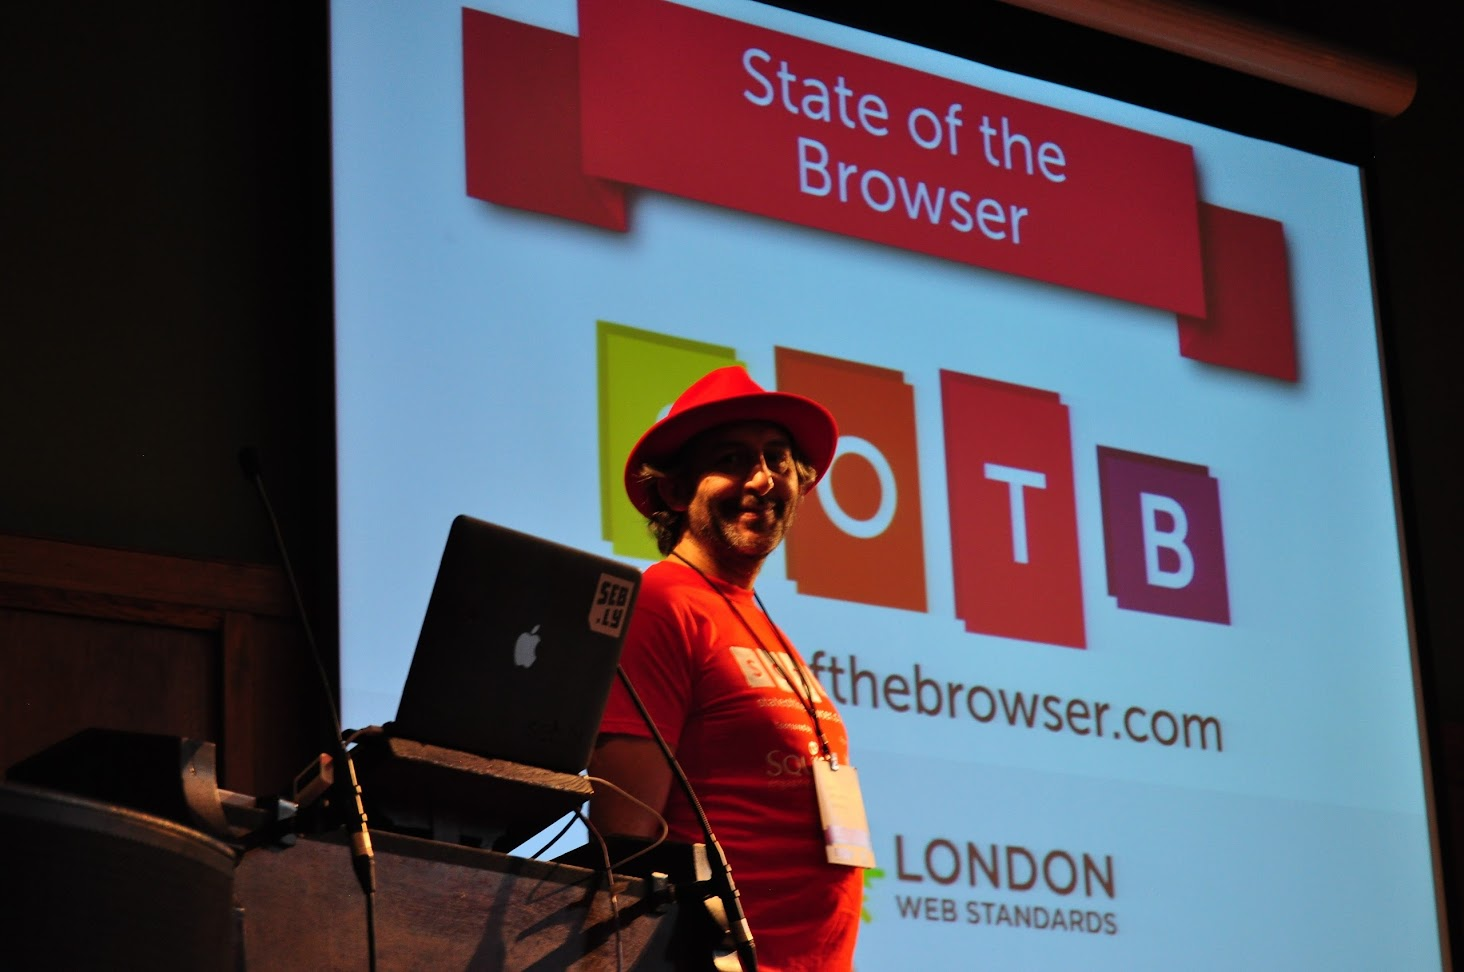 Dave Letorey at State of the Browser